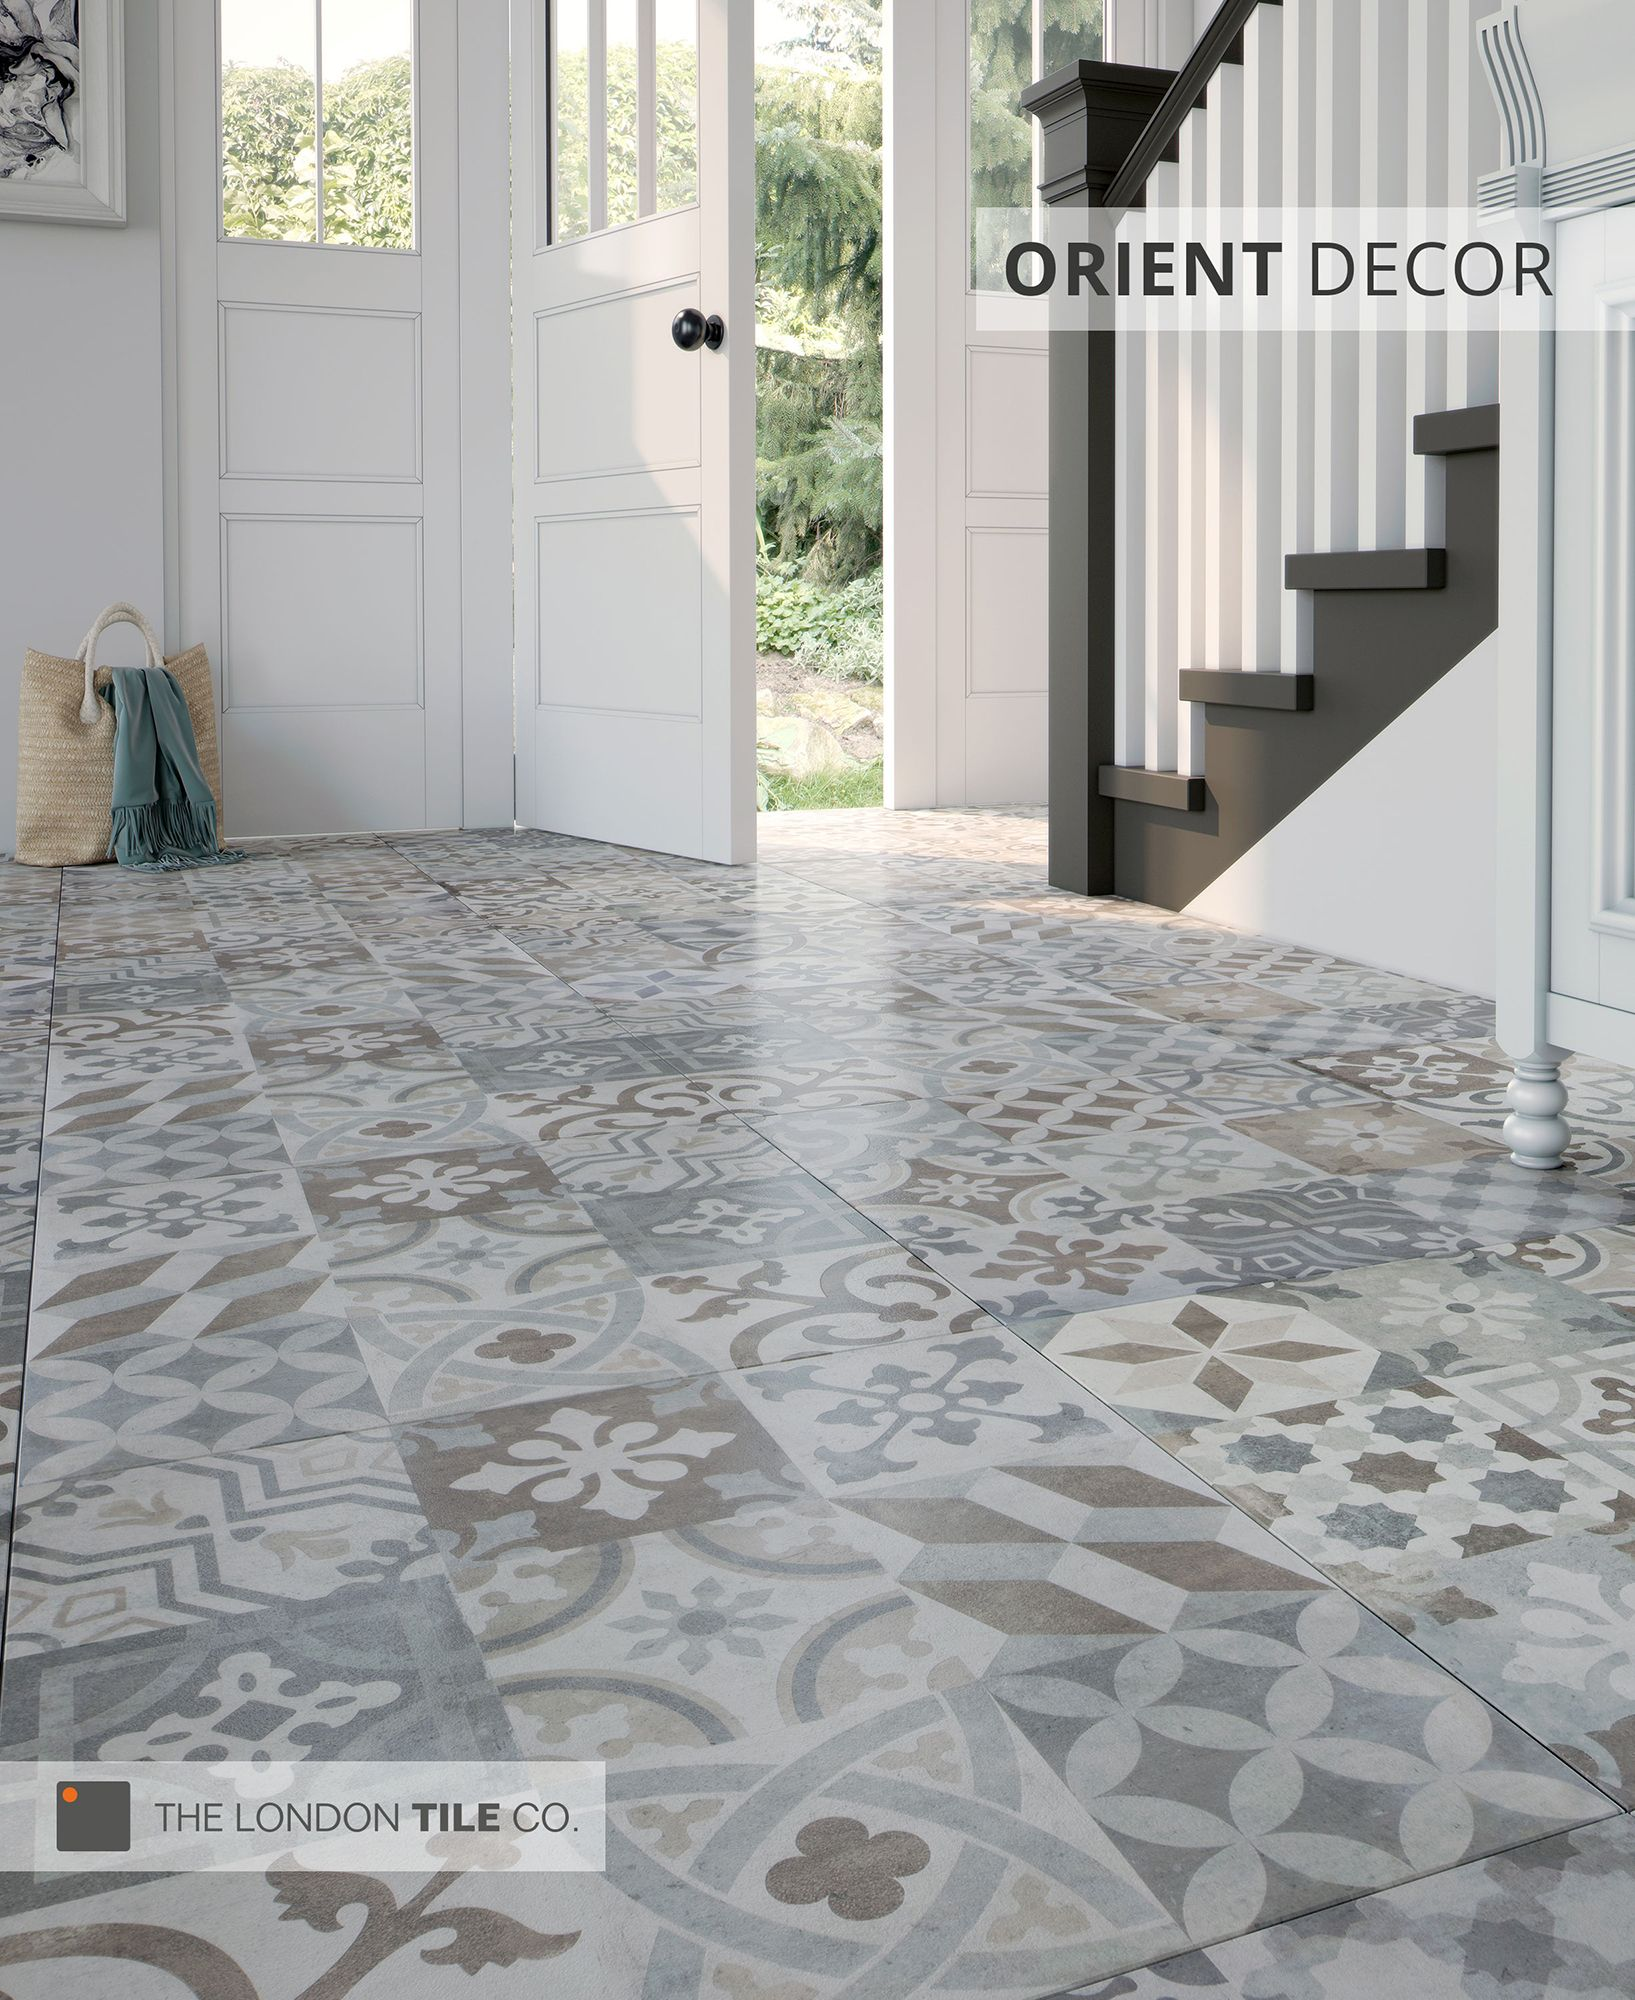 The Orient range of patterned floor tiles are both stylish